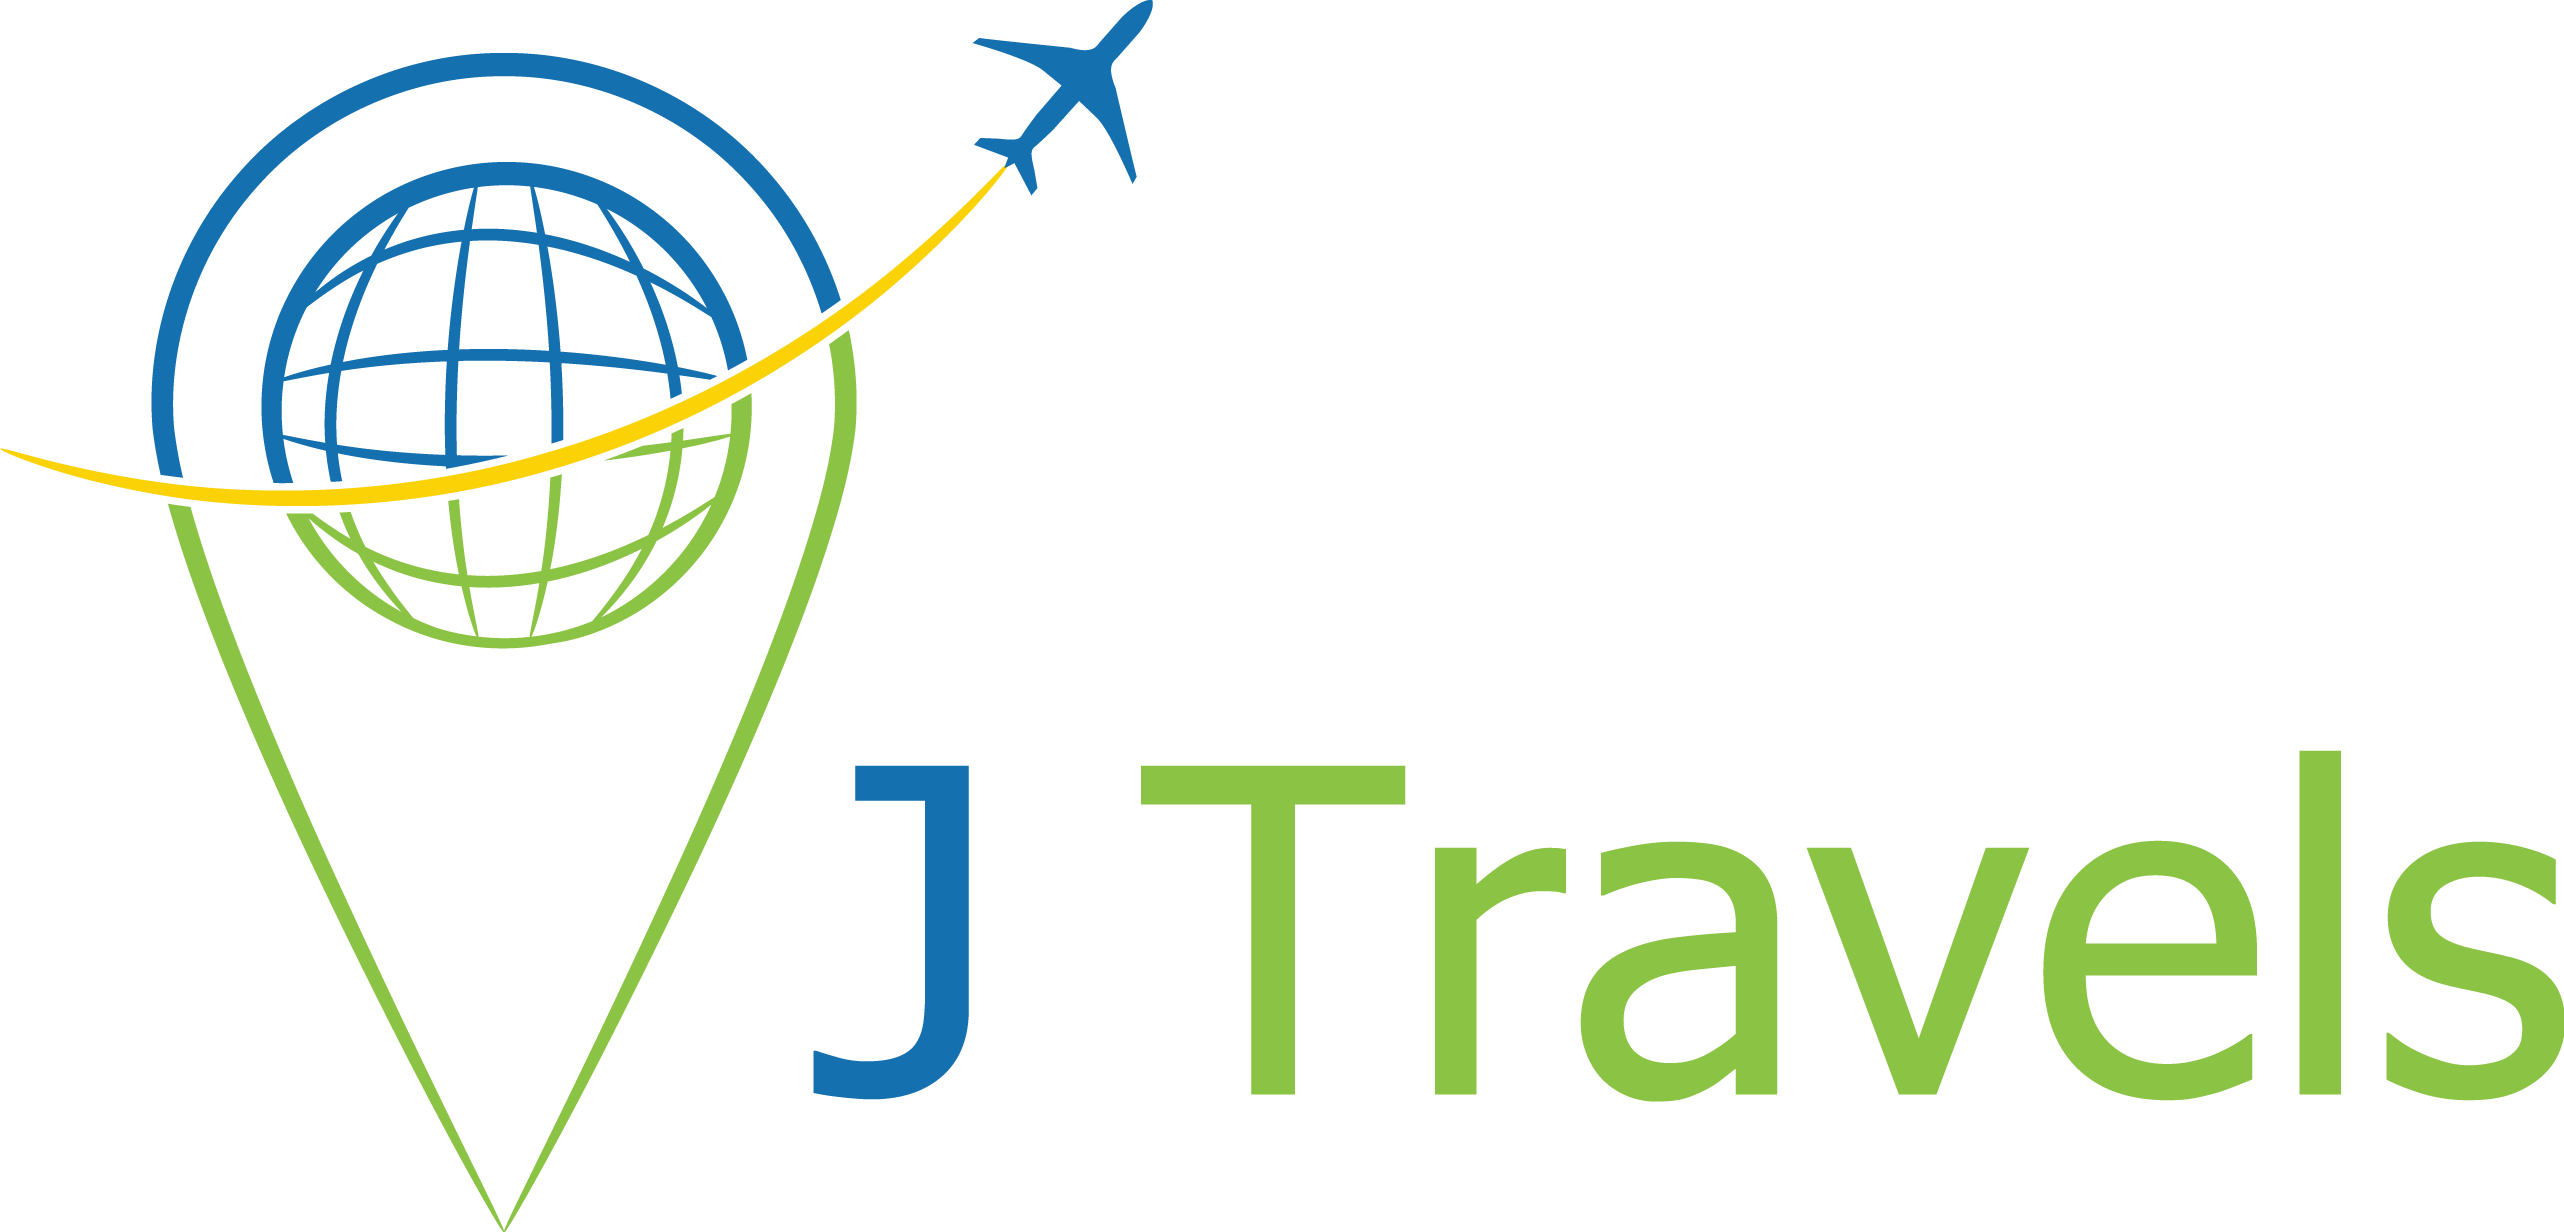 Contact us | Write us - J-Travels